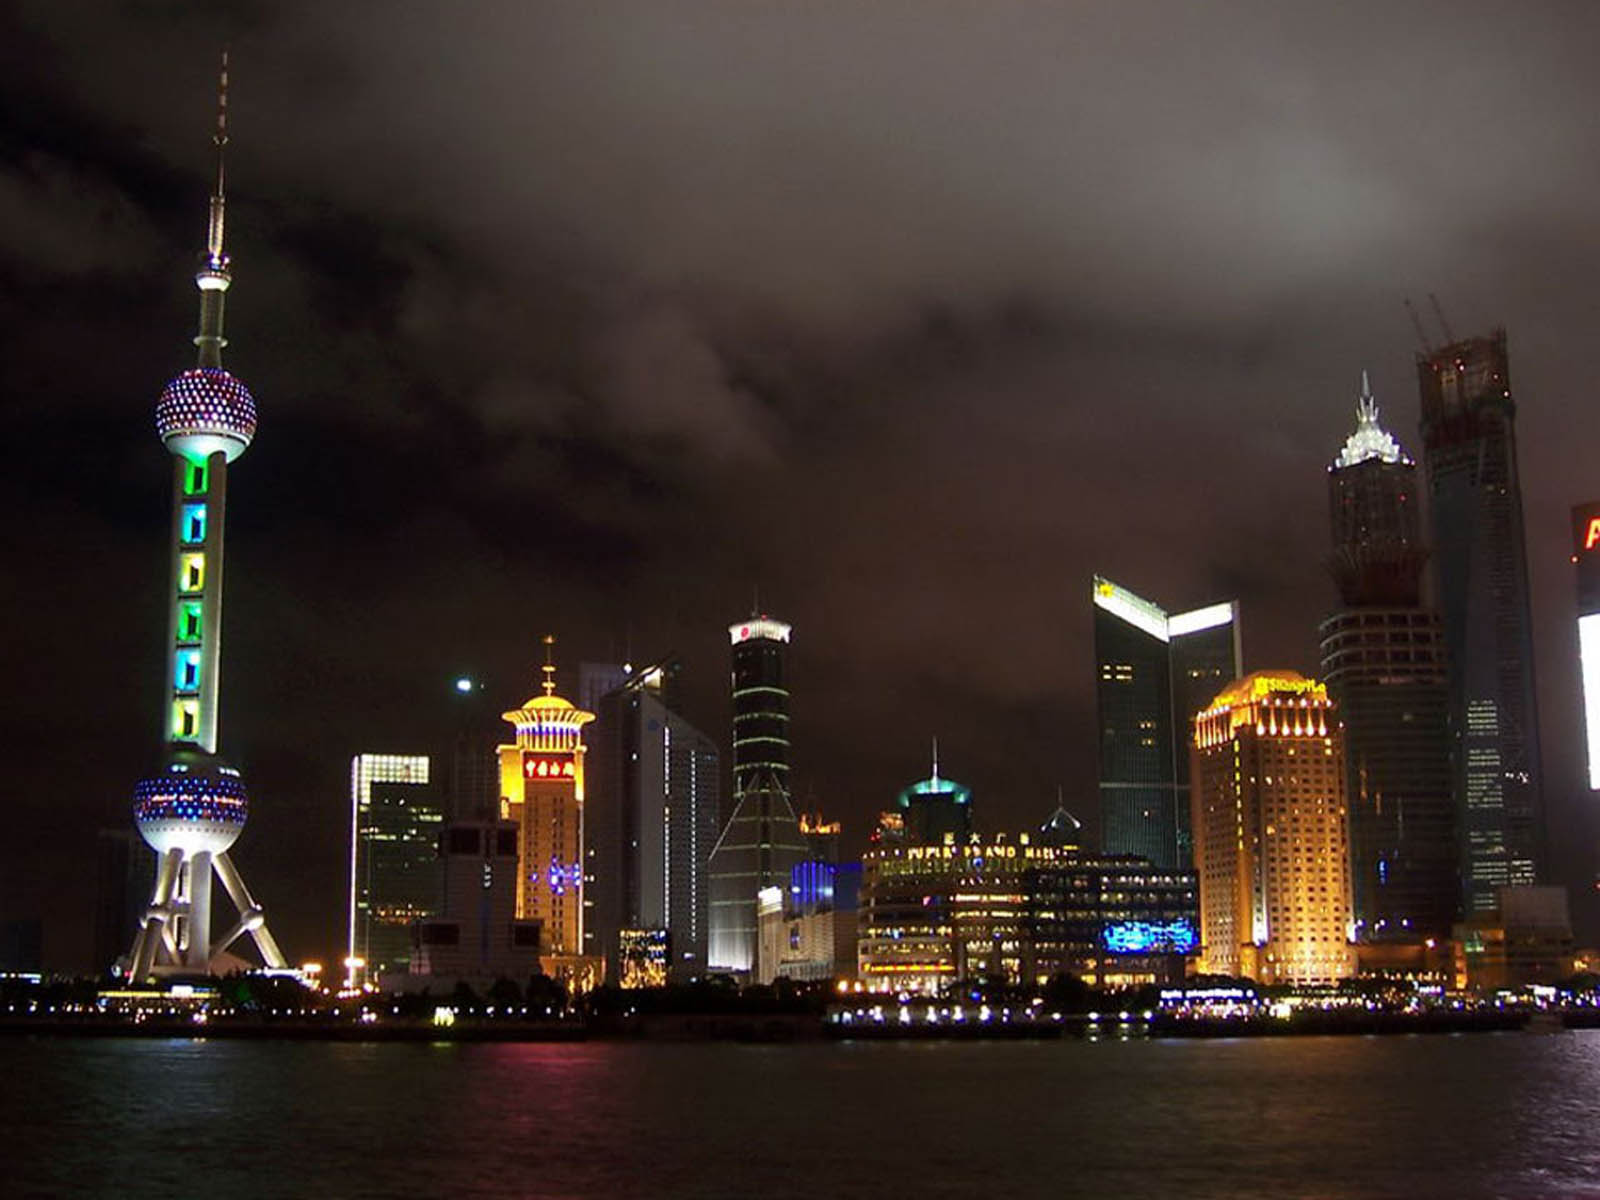 quality china wallpapers countries - photo #35